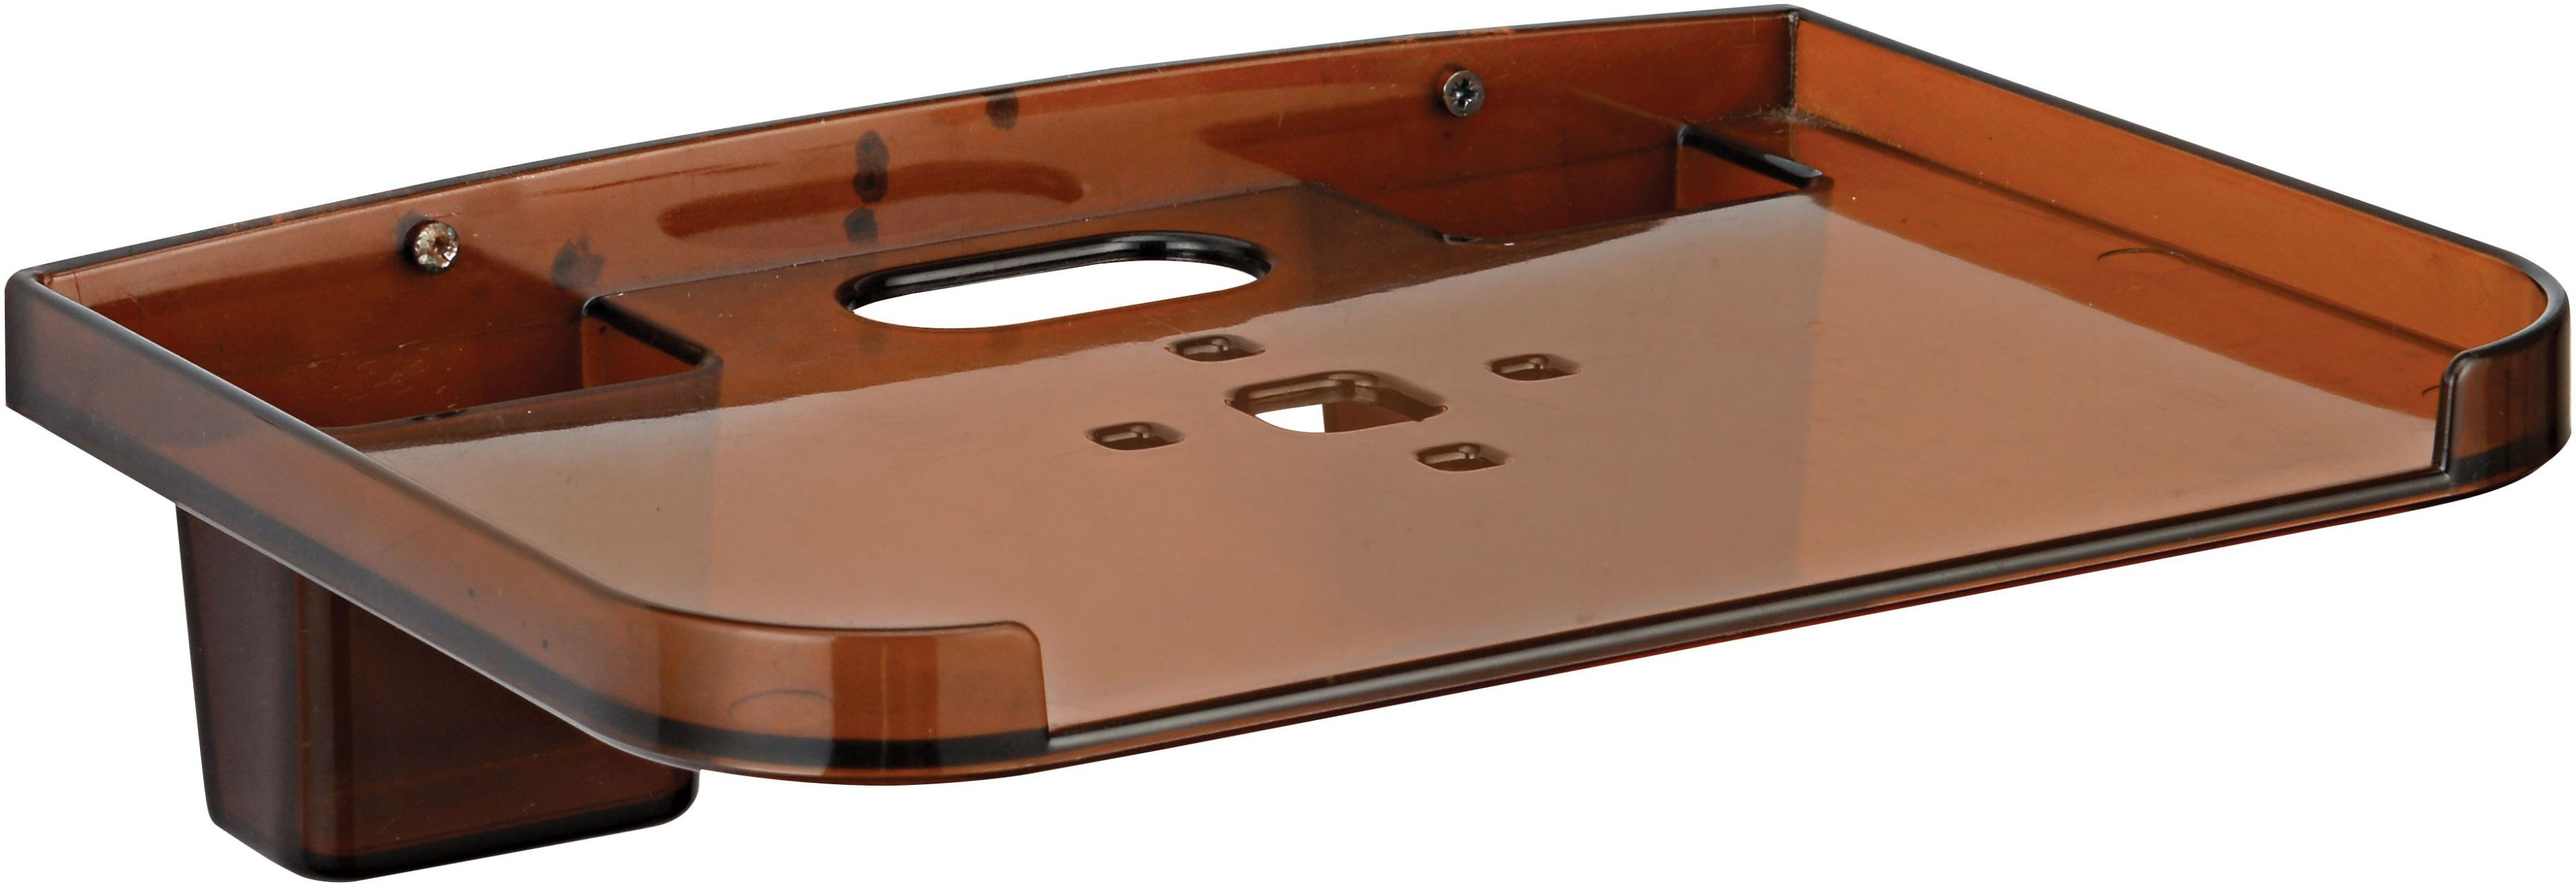 View 0001 SET TOP BOX & REMOTE HOLDER Plastic Wall Shelf(Number of Shelves - 1, Brown) Furniture (0001)